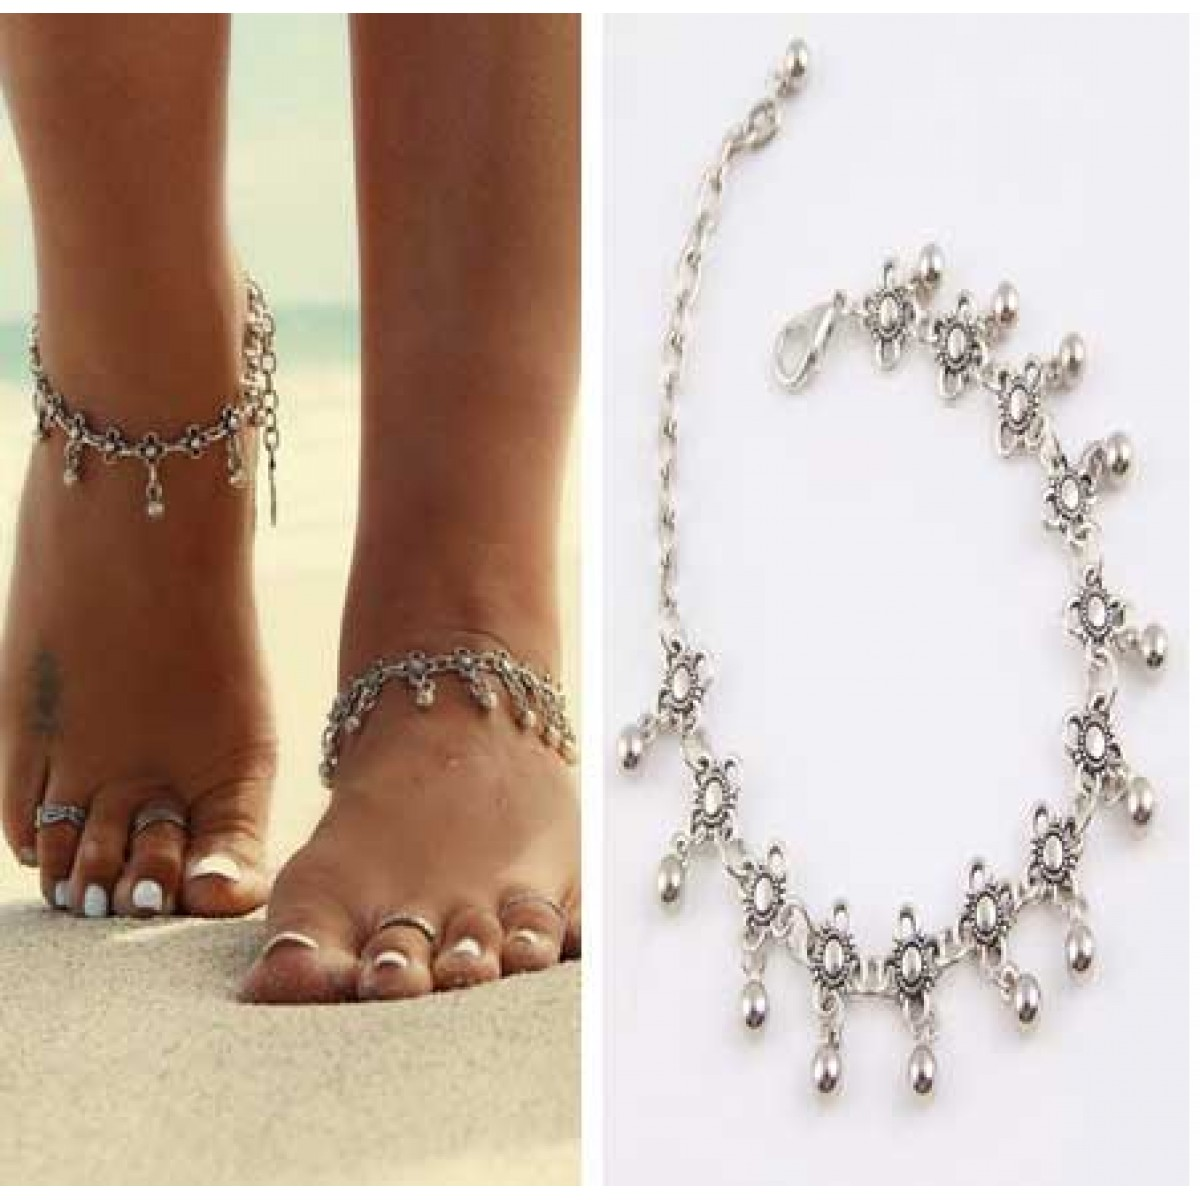 brand plated women anklets designer anklet bracelet color items bracelets leg gold foot jewelry wholesale item chain vintage and in from fashion s new